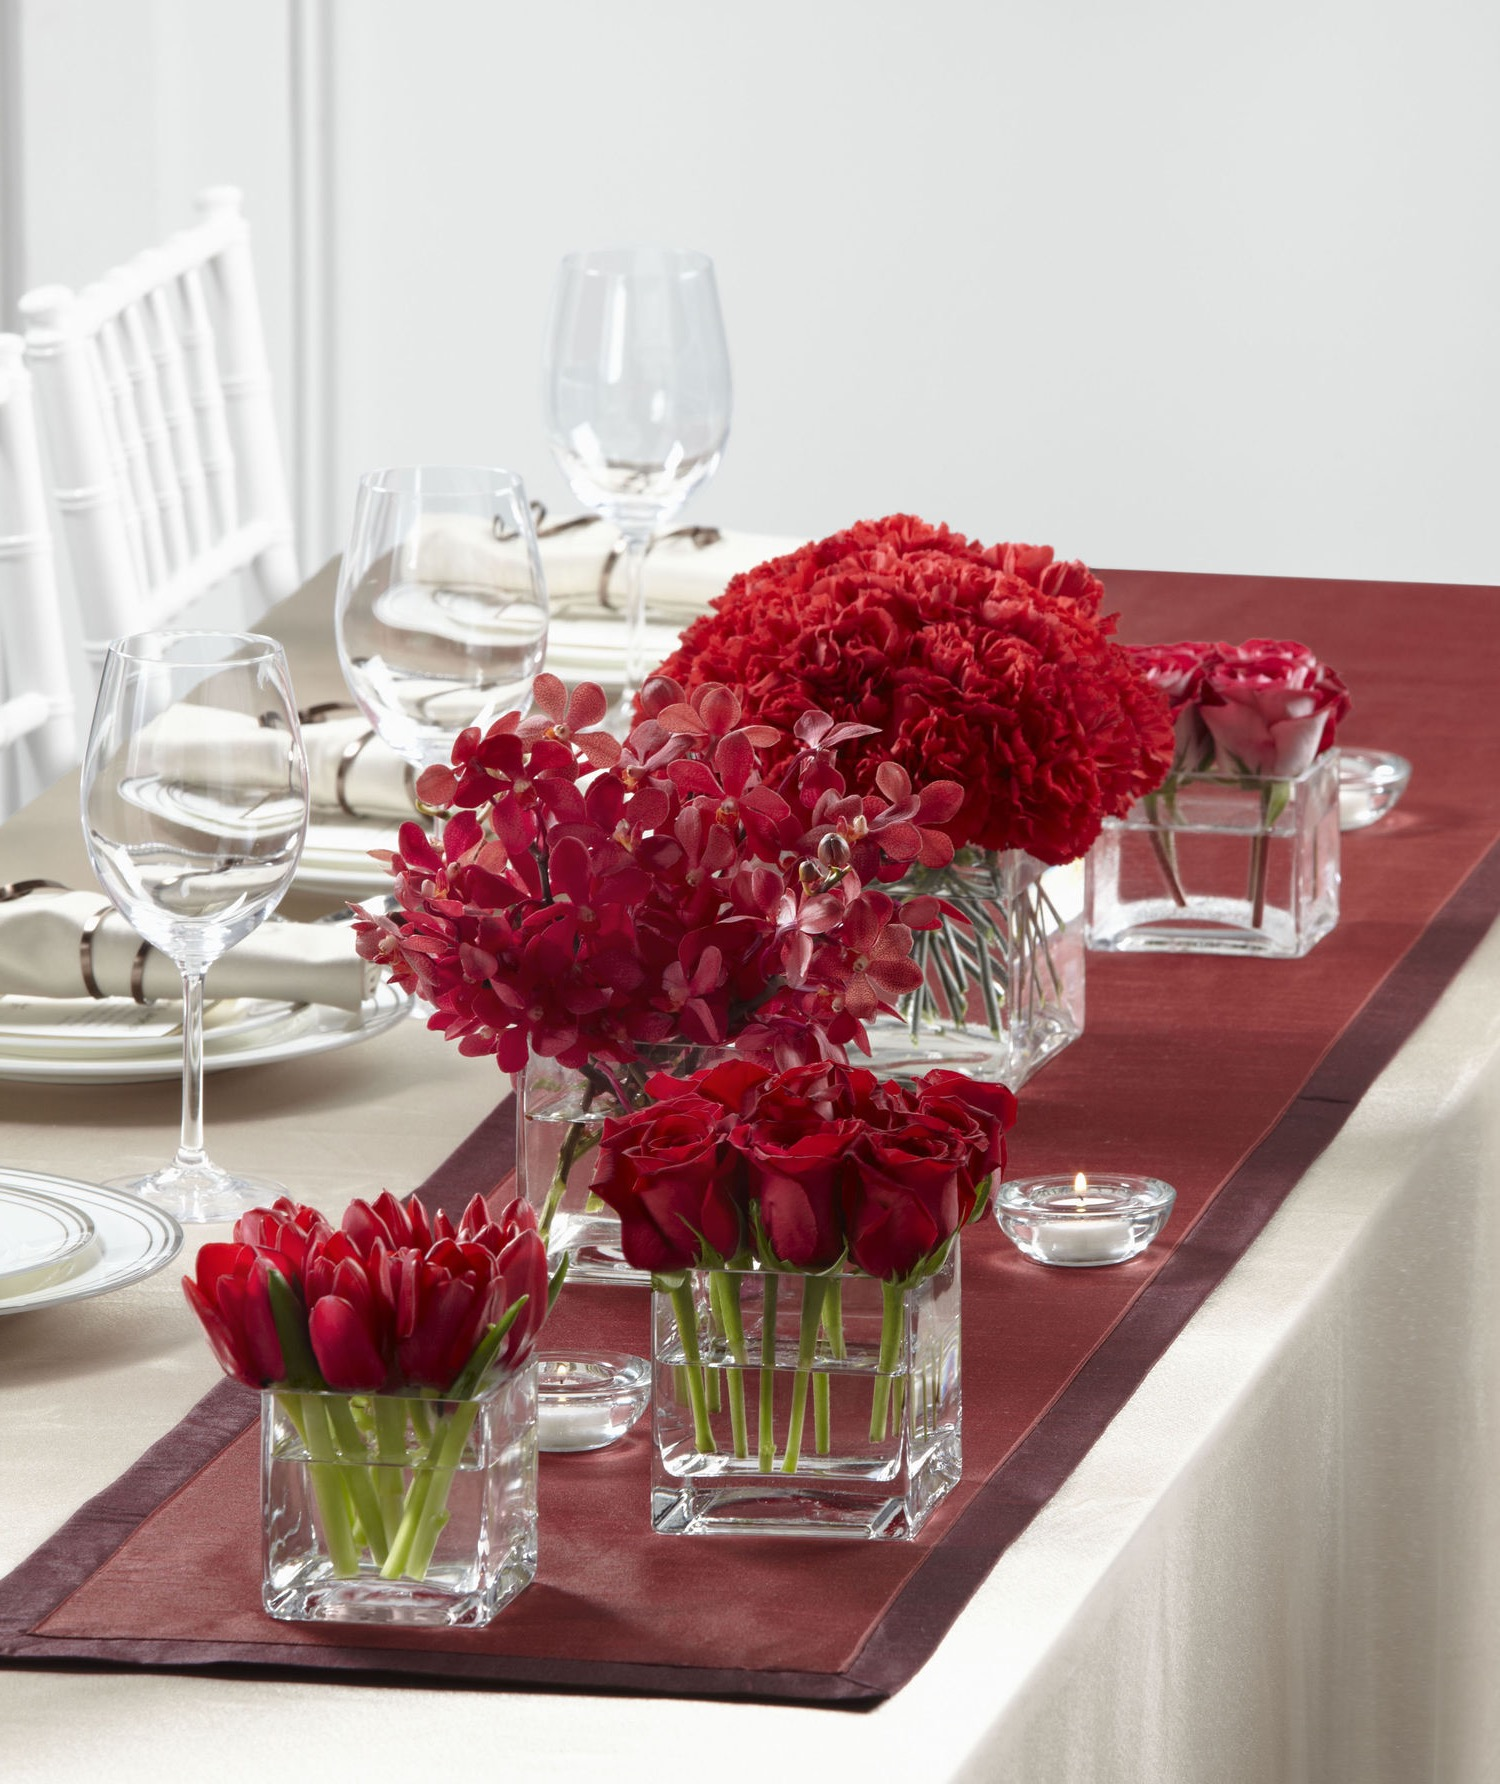 Adding a centerpiece to a table immediately makes it look sophisticated, complete, and beautiful. Floral centerpieces are the usual go-to if you want to dress up your tablescape, but candles are an easy and elegant centerpiece feature that could save you money, particase.ml are countless gorgeous ways to make a candle centerpiece, and we've found some of the best.